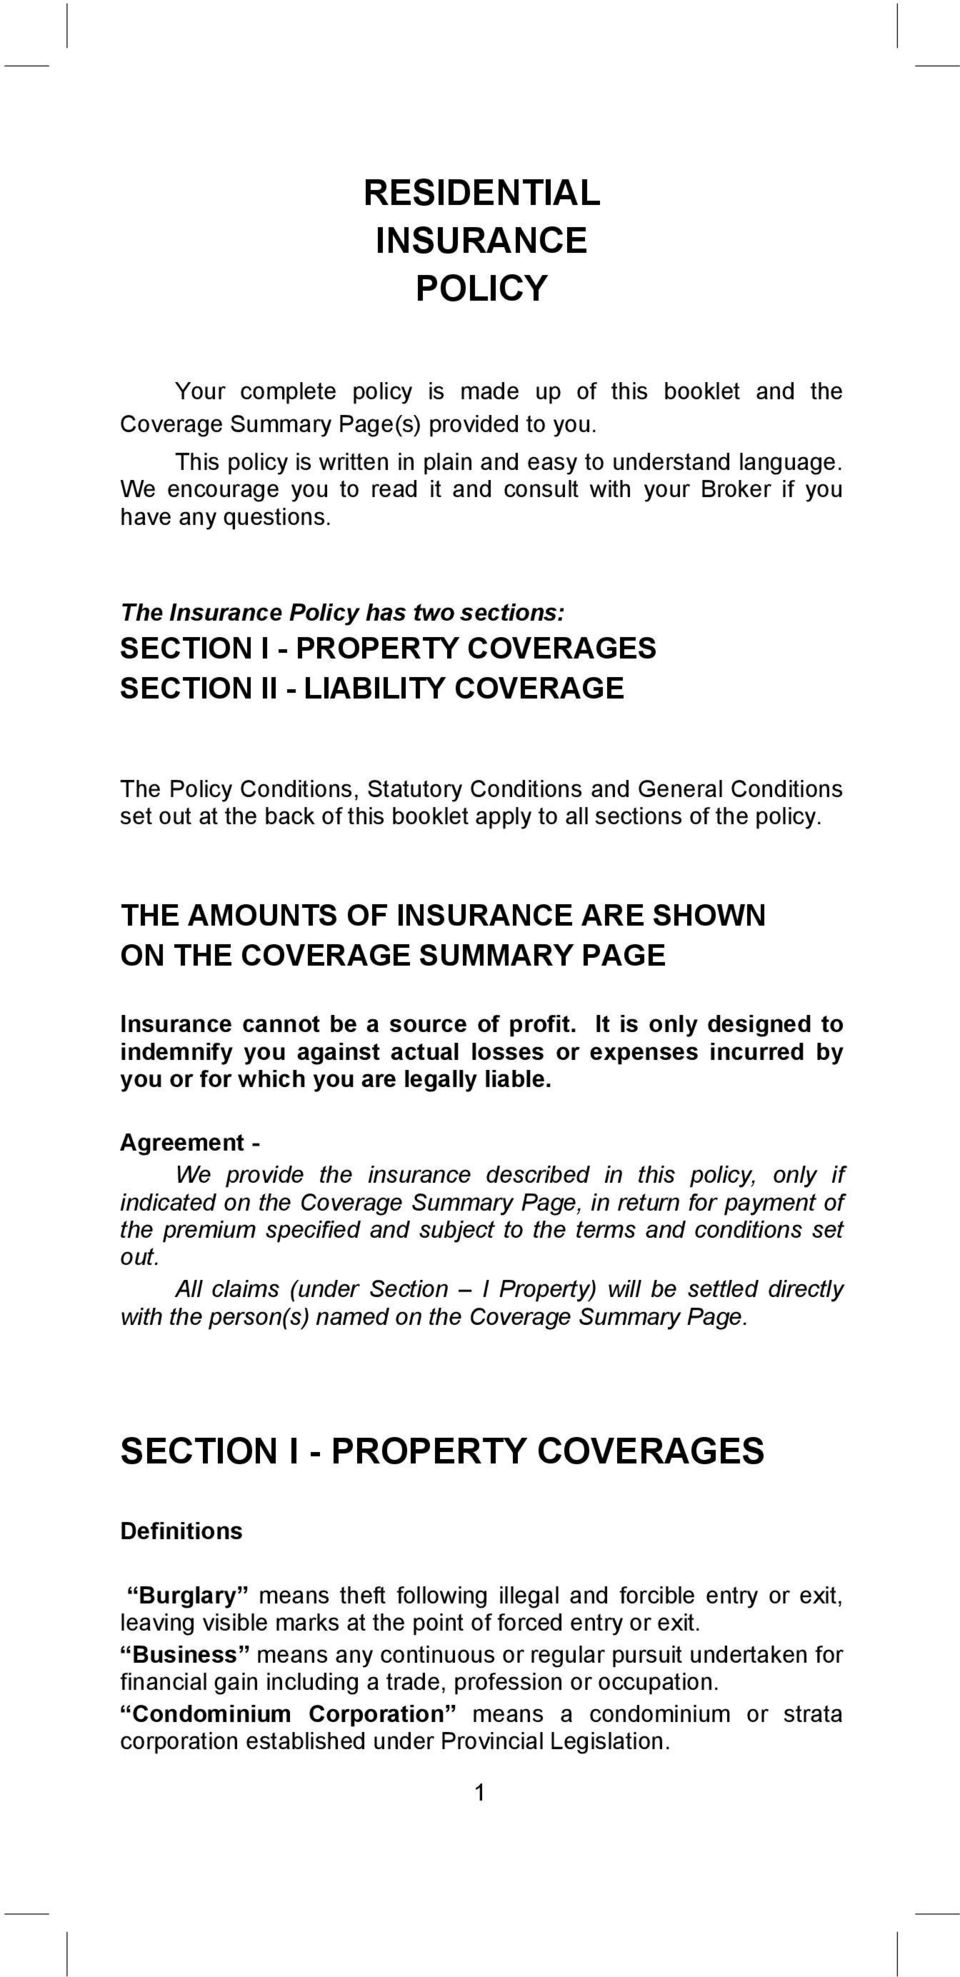 The Insurance Policy has two sections: SECTION I - PROPERTY COVERAGES SECTION II - LIABILITY COVERAGE The Policy Conditions, Statutory Conditions and General Conditions set out at the back of this